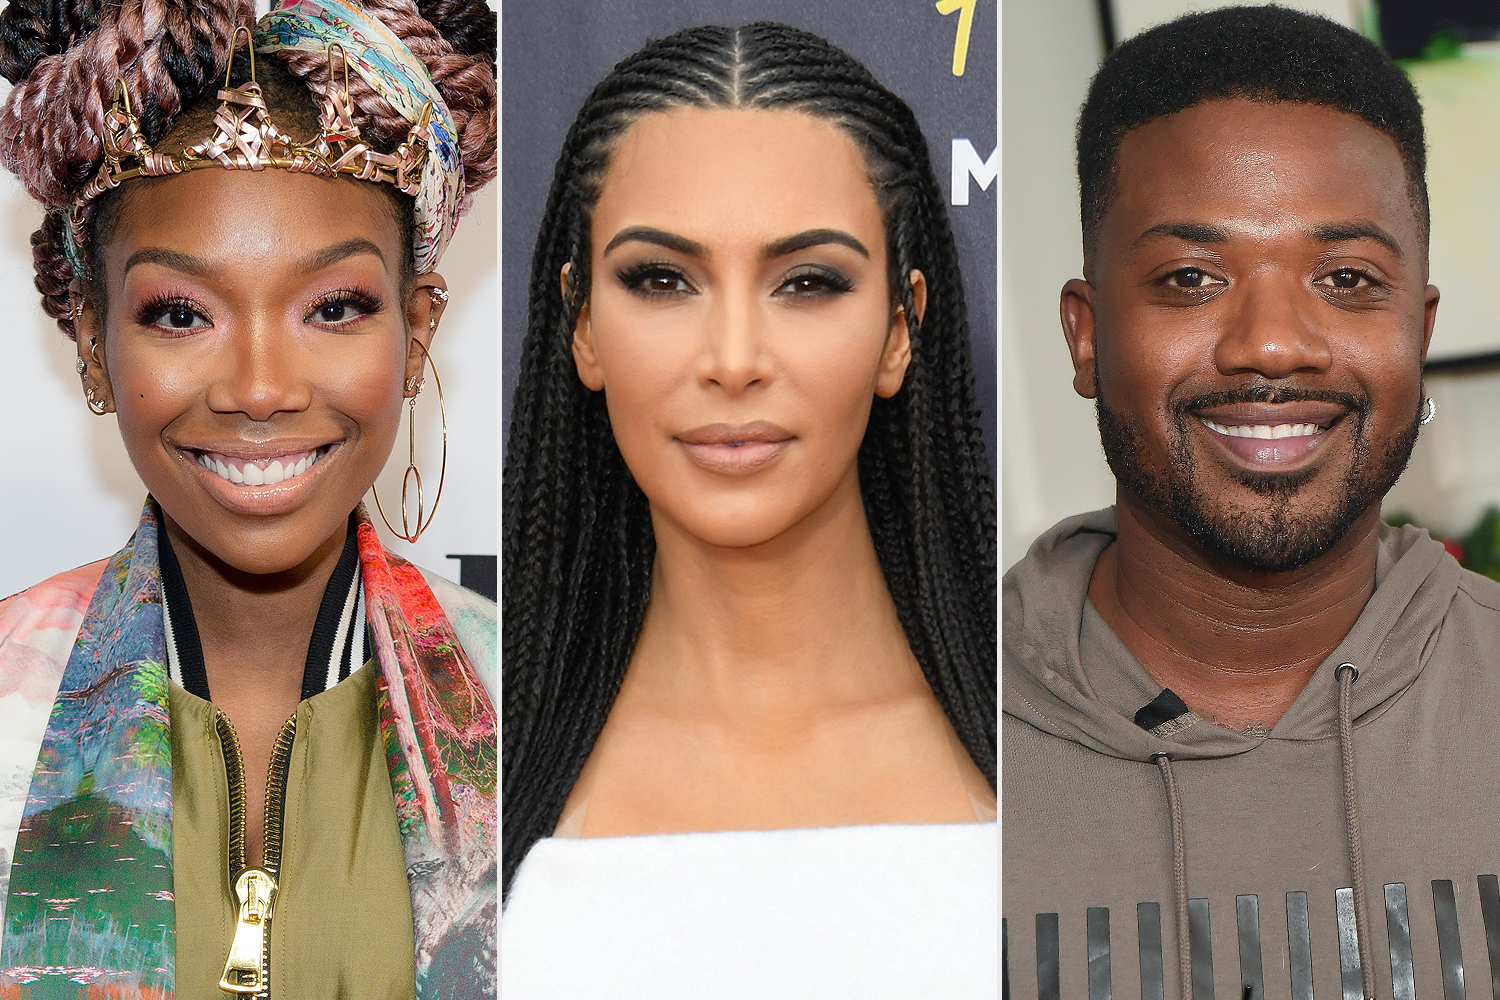 Brandy, Kim Kardashian West, Ray J